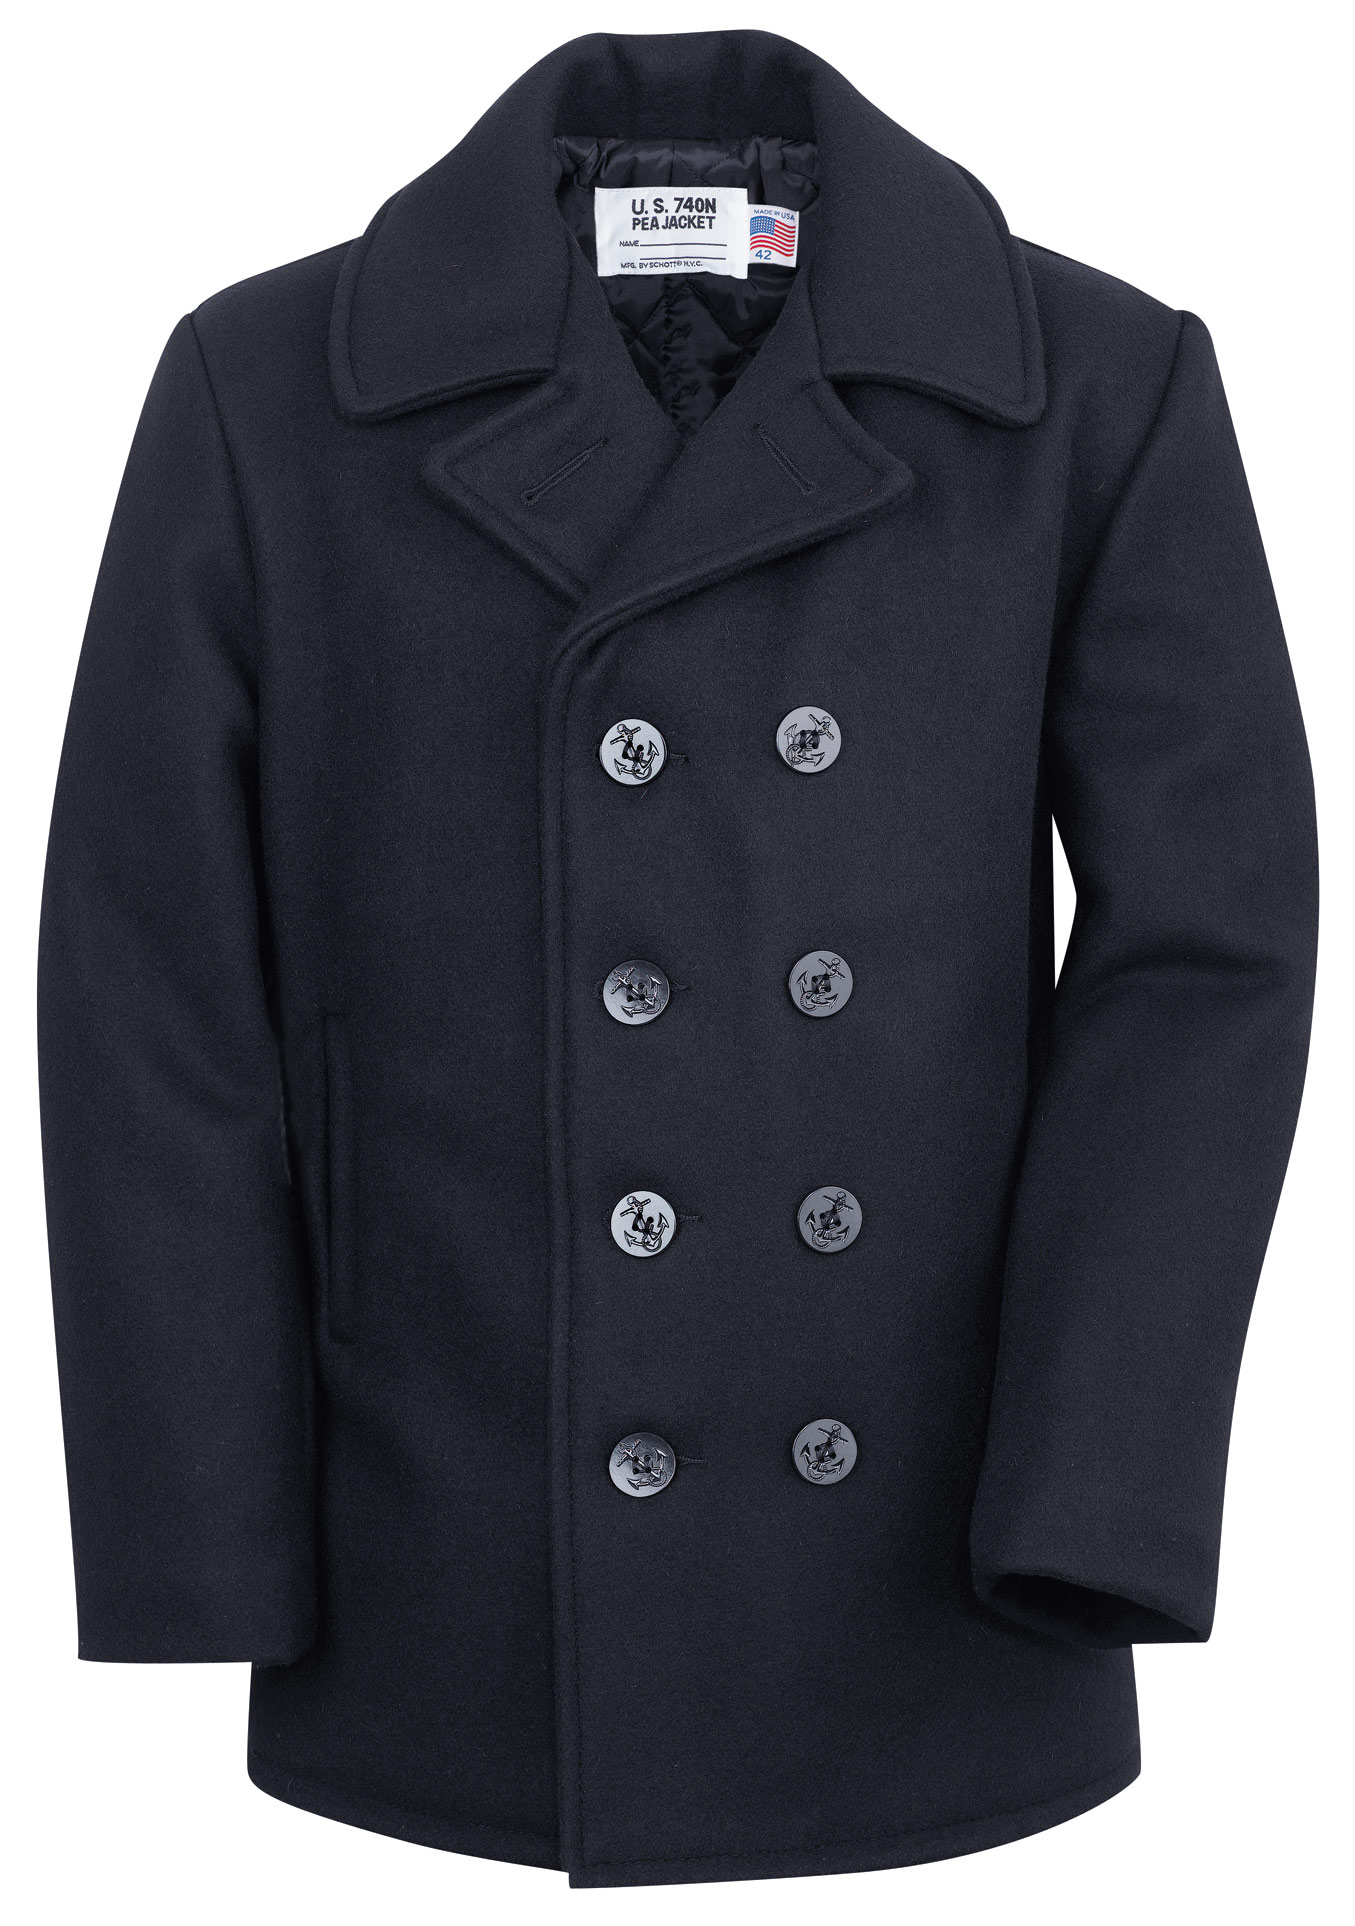 Schott N Y C  740 The Original Navy Pea Coat - Navy Size 32